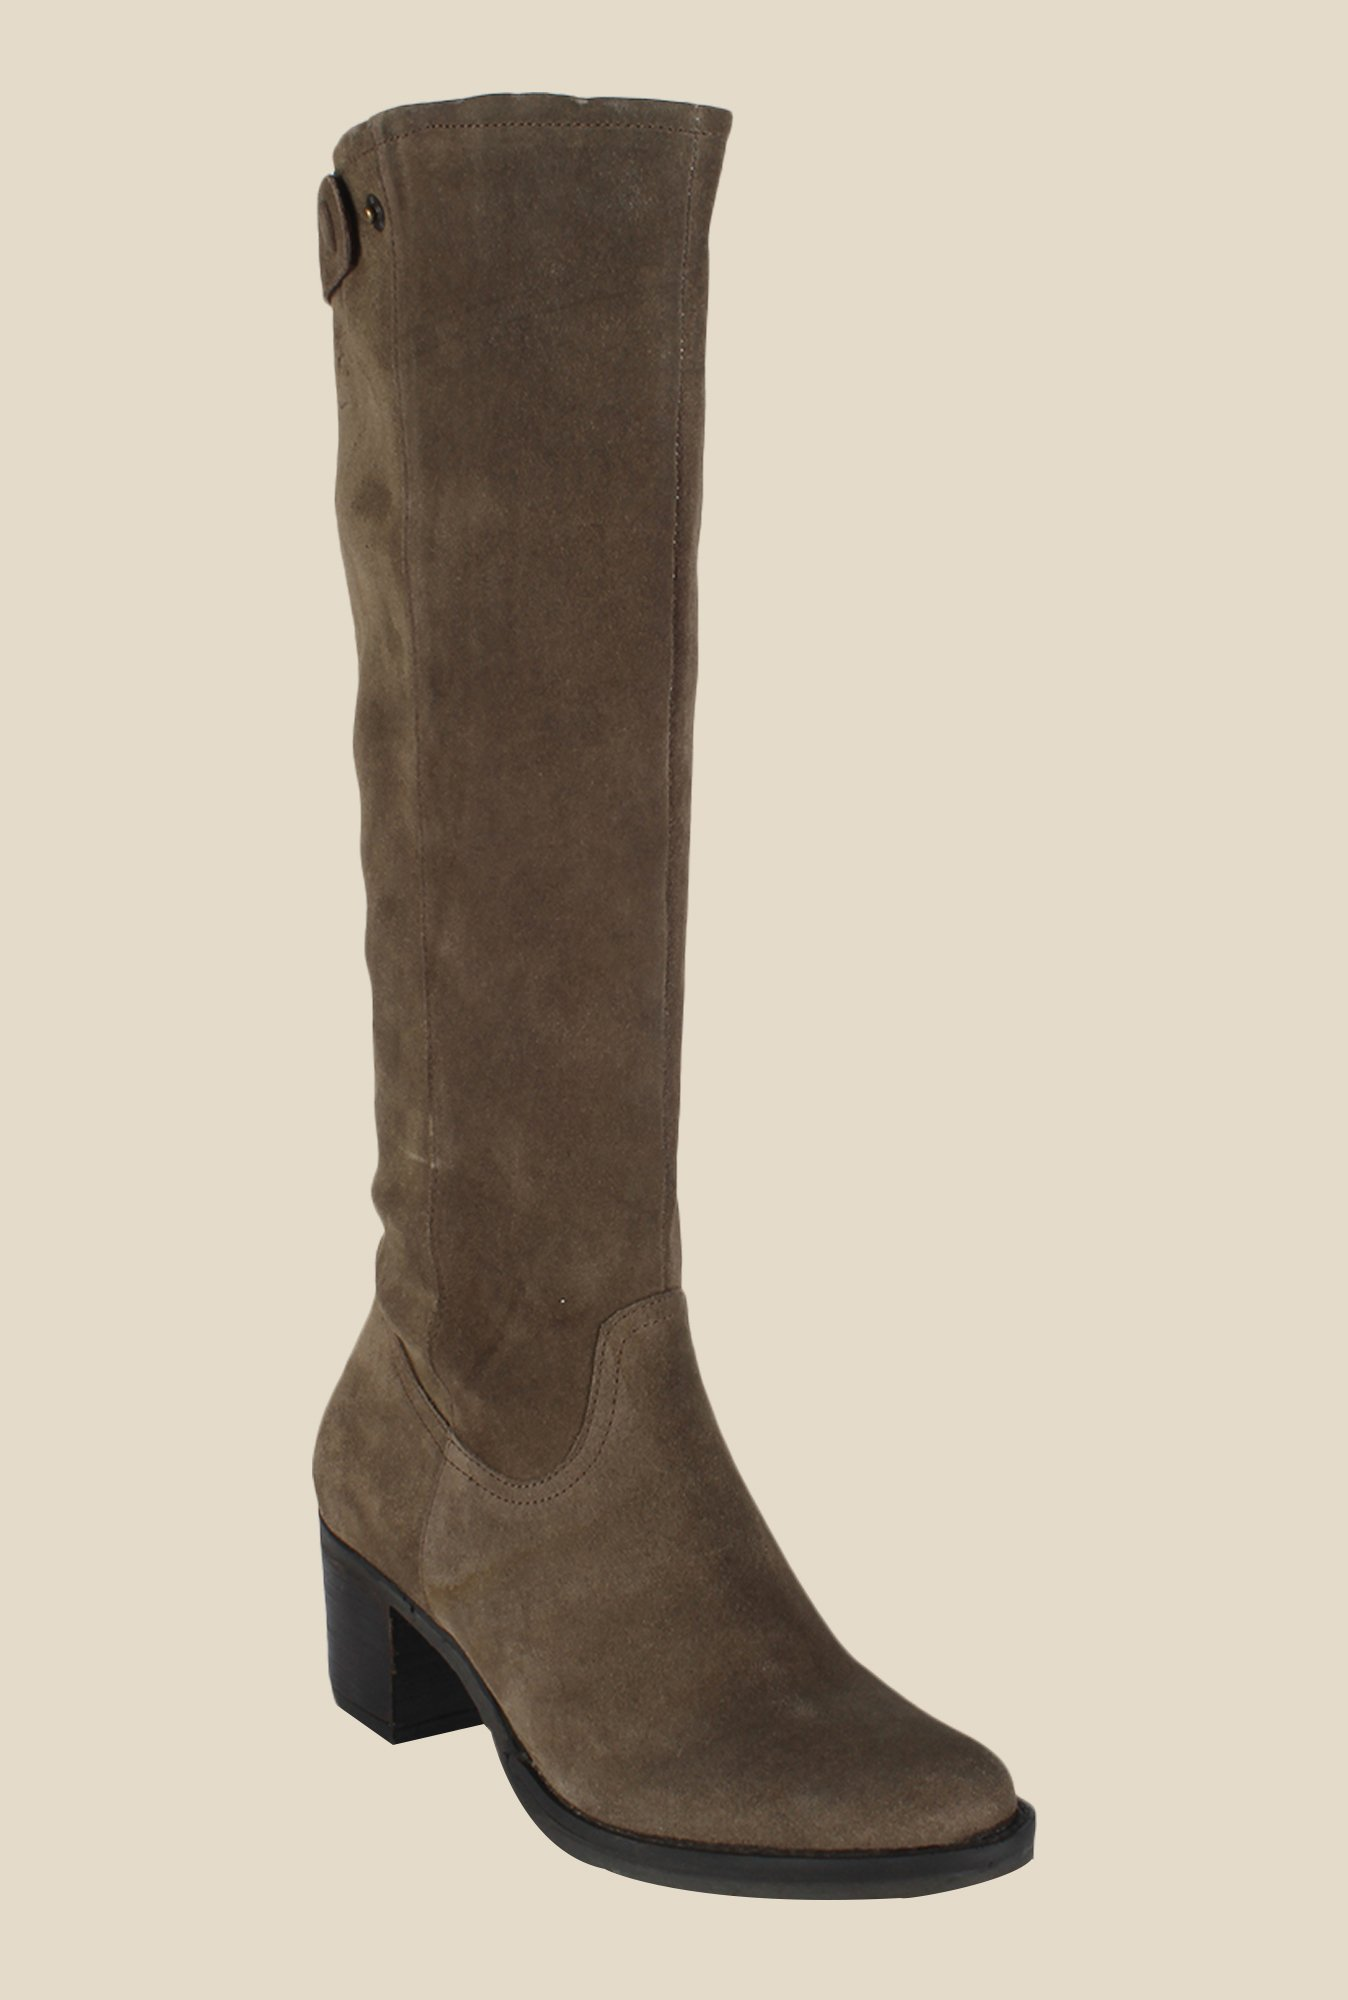 Salt 'n' Pepper Juliet Sand Brown Casual Boots